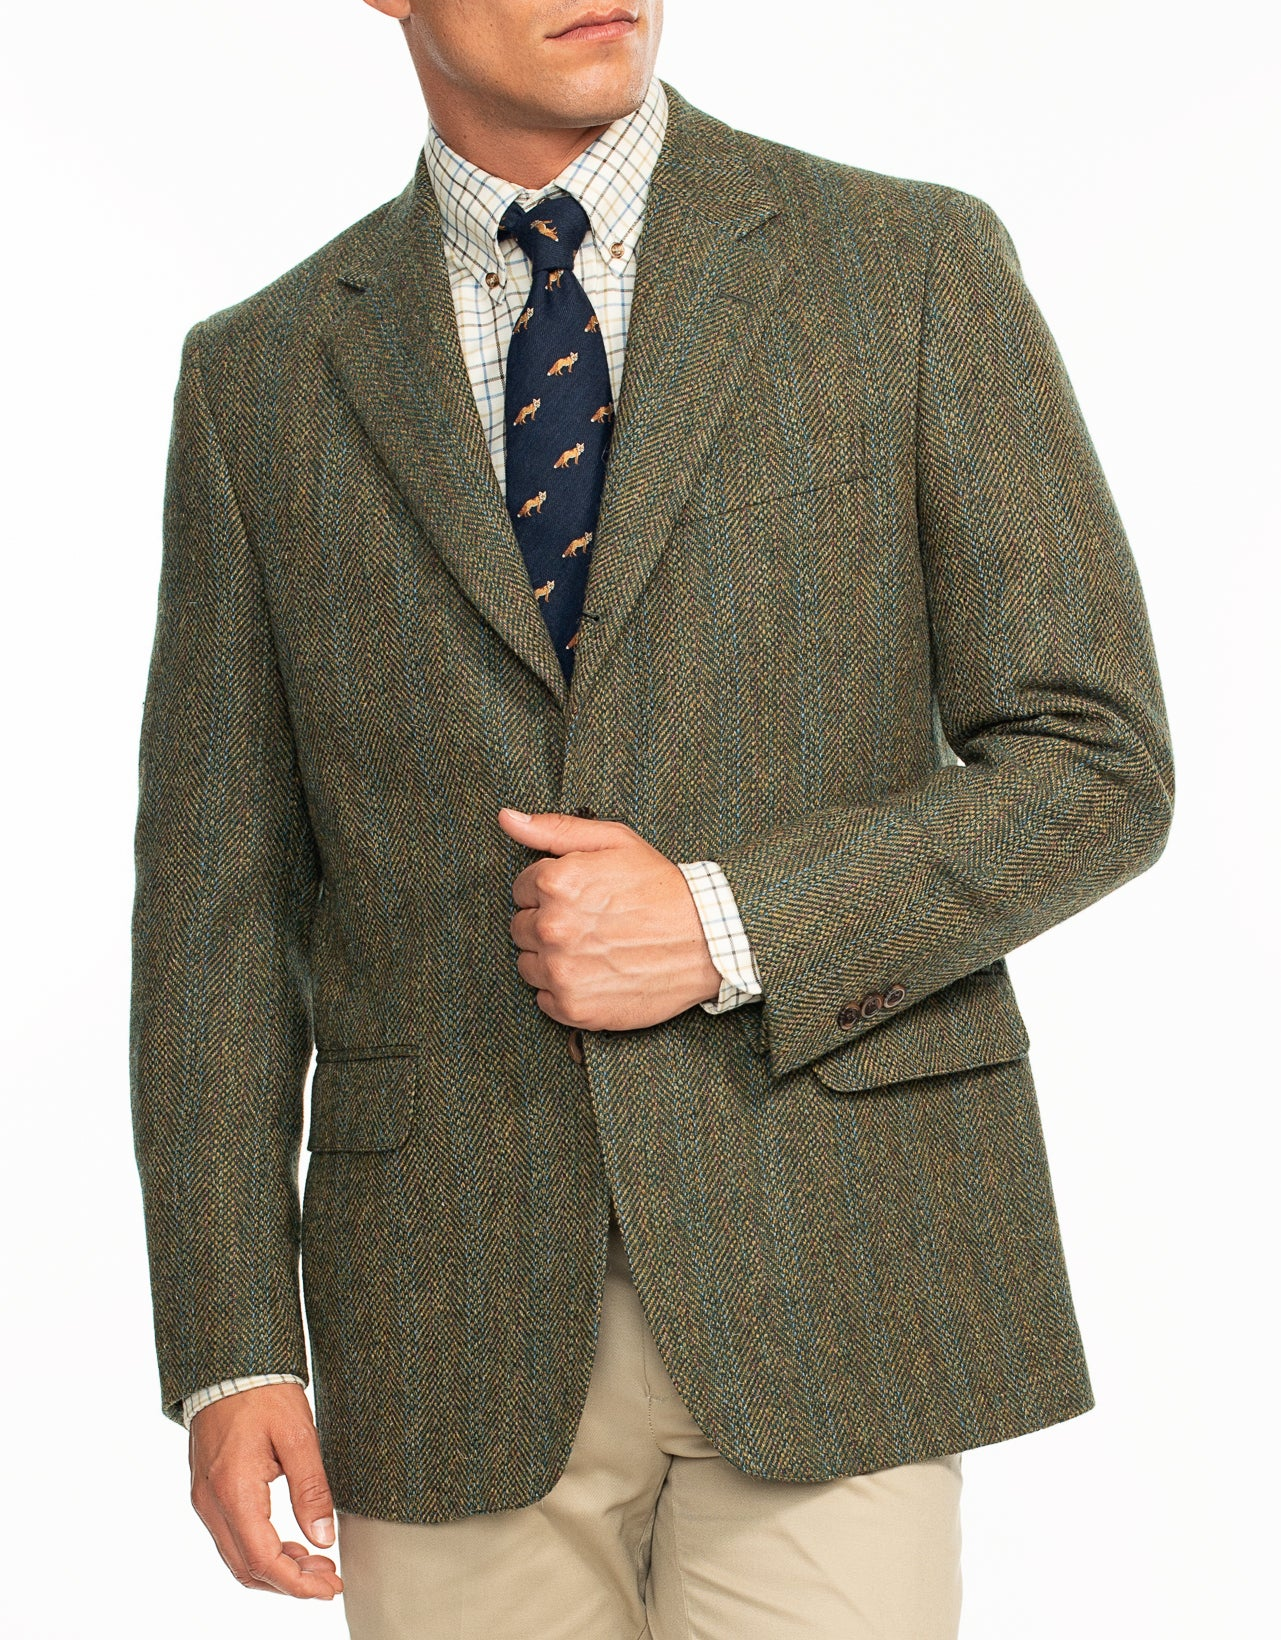 DONEGAL TWEED GREEN OLIVE WITH BLUE STRIPES